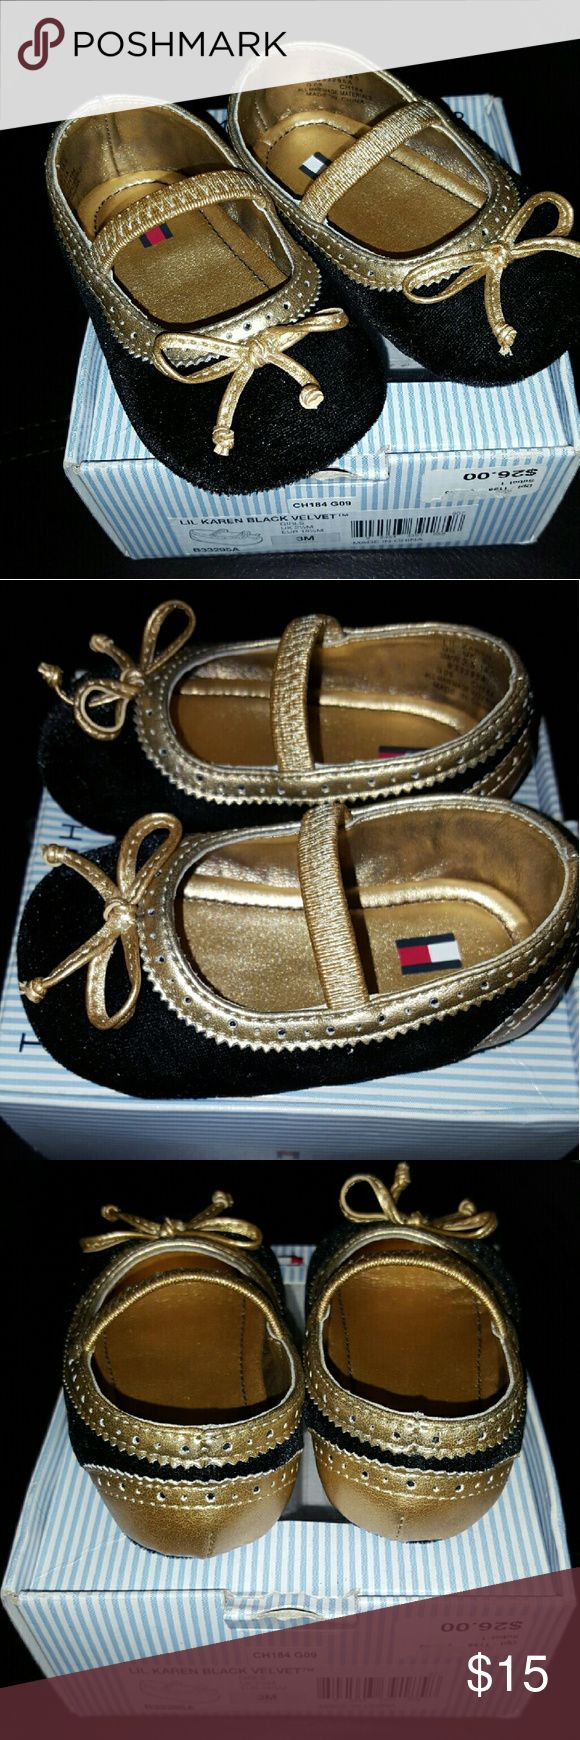 Black & Gold Tommy Hilfiger Size 3 Baby Shoes Lil Karen Velvet Black baby shoes by Tommy Hilfiger. It is in size 3. Comes with box. Gently used. Tommy Hilfiger Shoes Baby & Walker